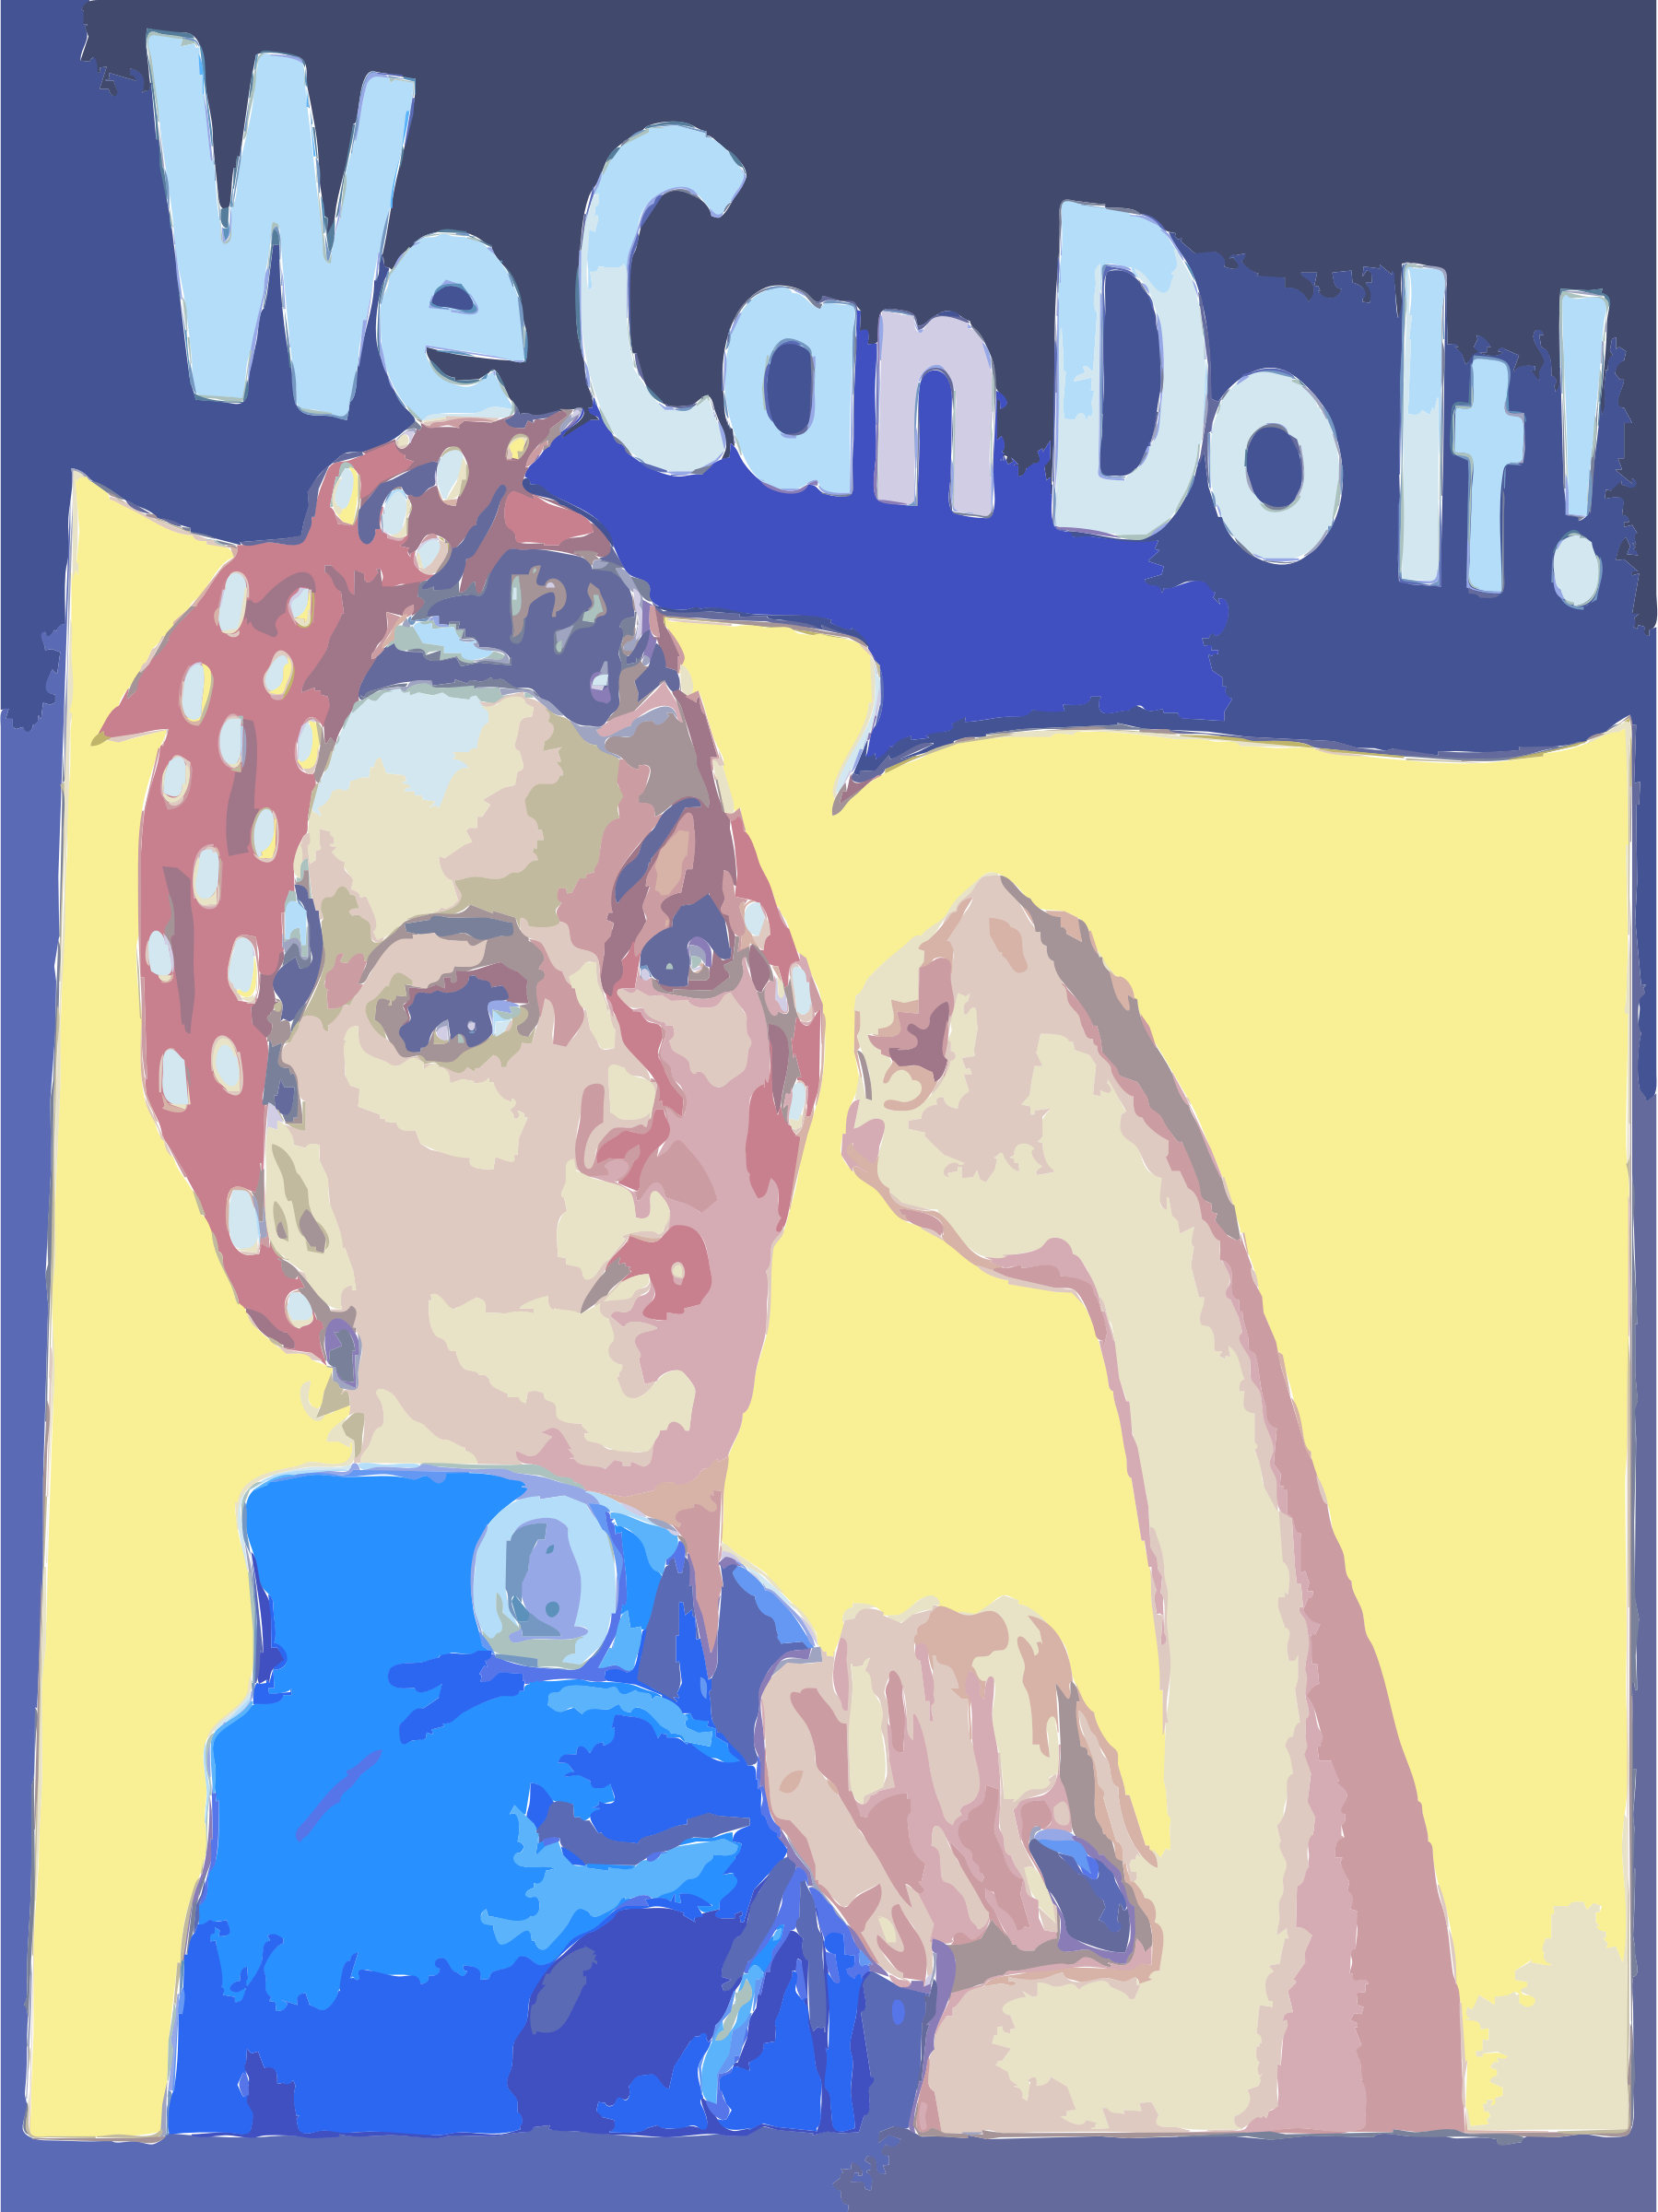 We Can Do It! by rejon